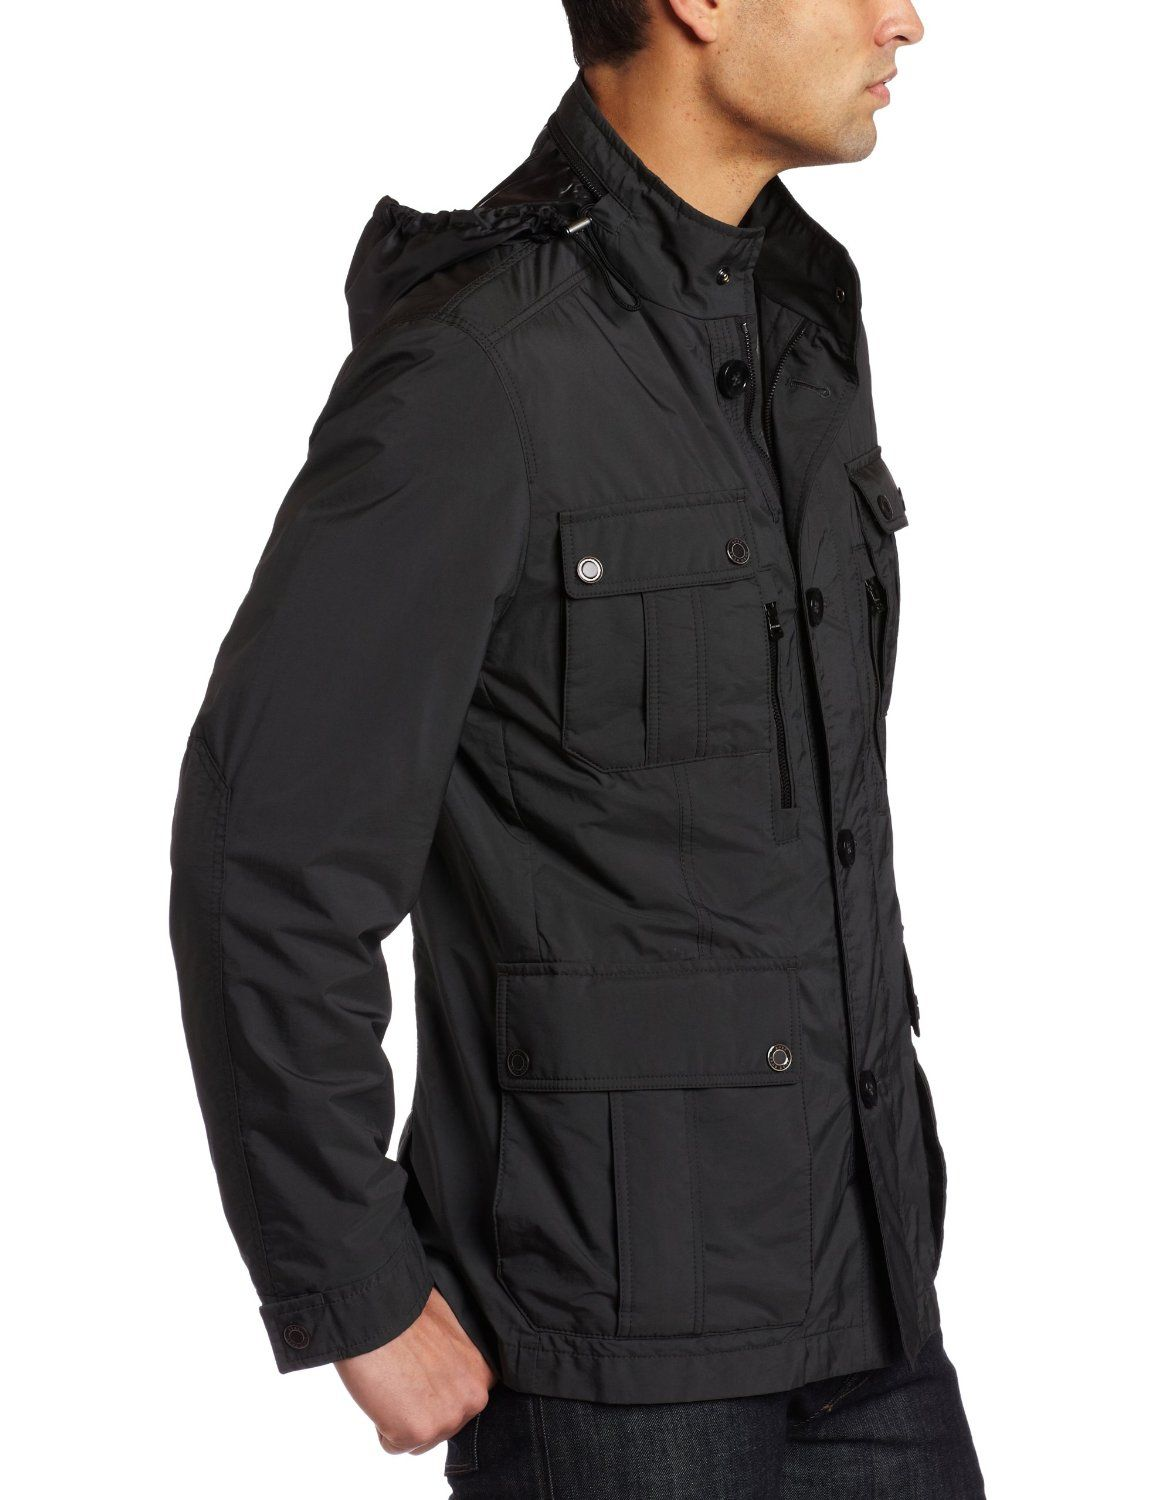 hugo boss mens casual jacket clothing and style